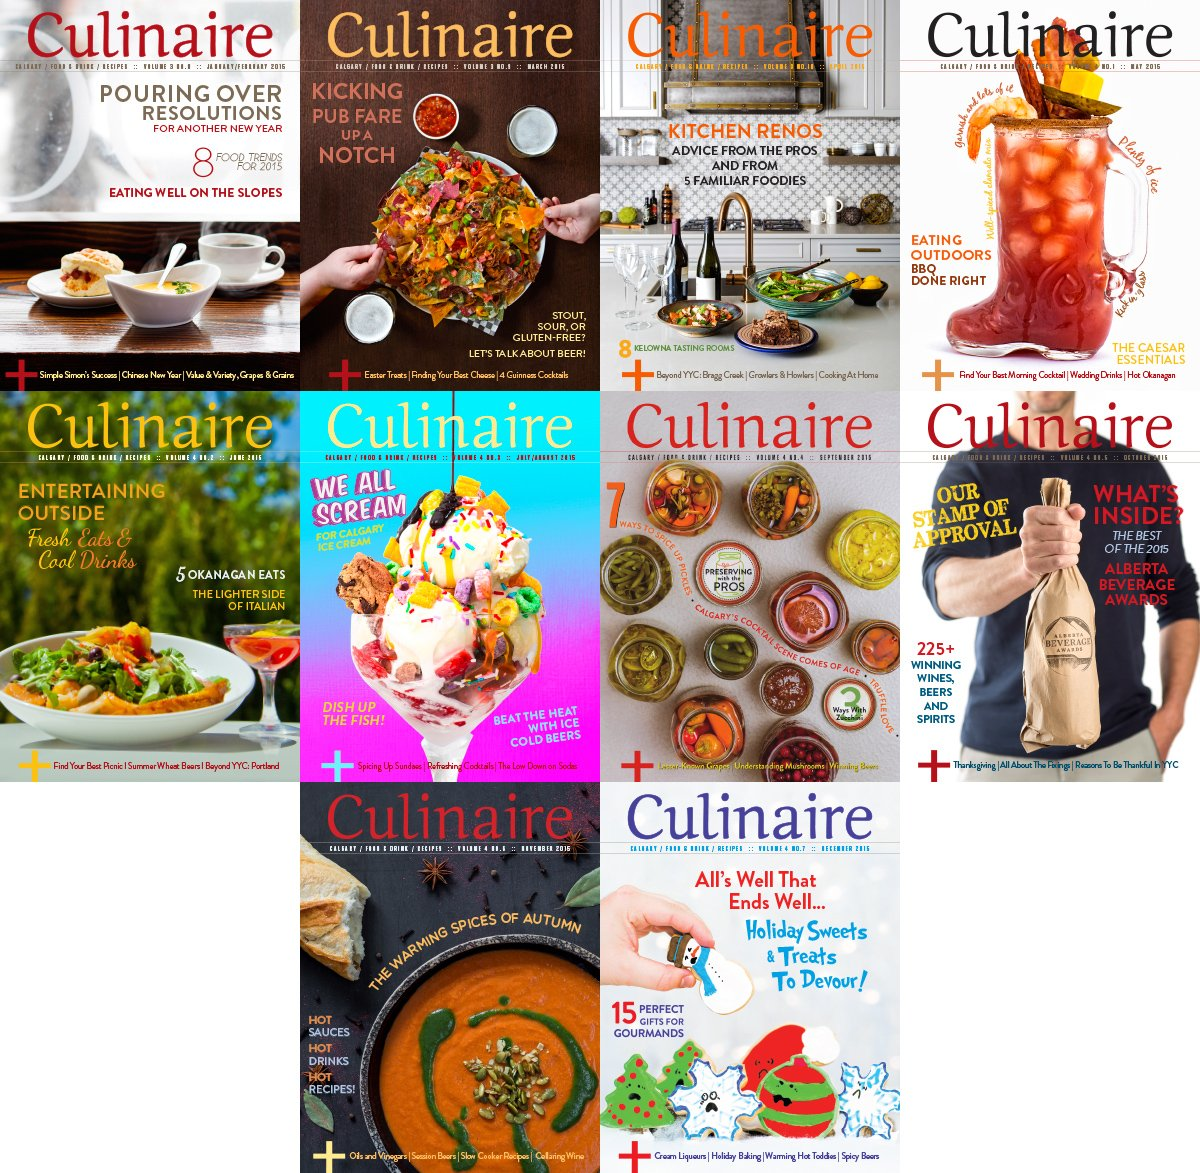 Download culinaire magazine 2015 full year collection for Culinaire